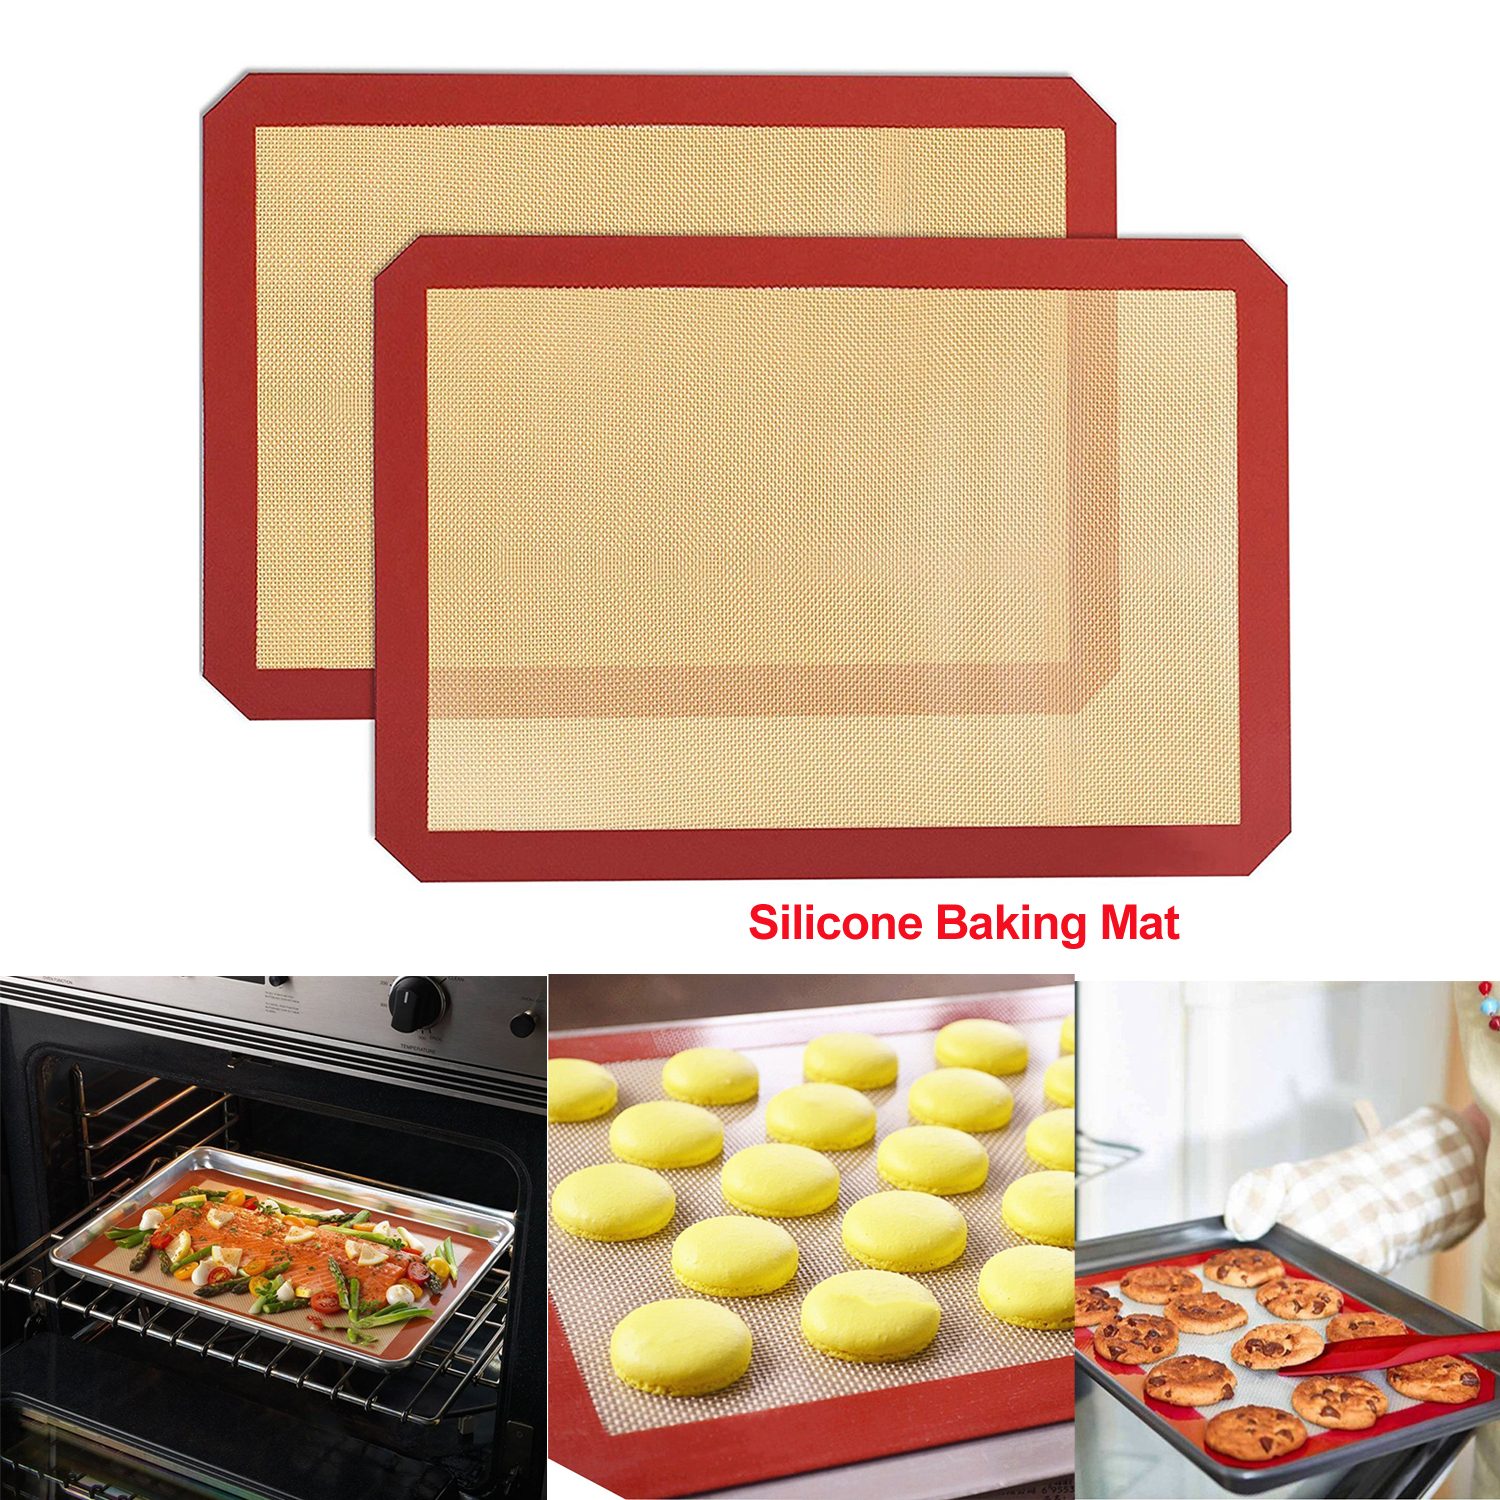 42*29.5cm Baking Sheet Glass Fiber Rolling Dough Mat Considerate Hot Non-stick Silicone Baking Mat Pad Large Size For Cake Cookie Macaron Less Expensive